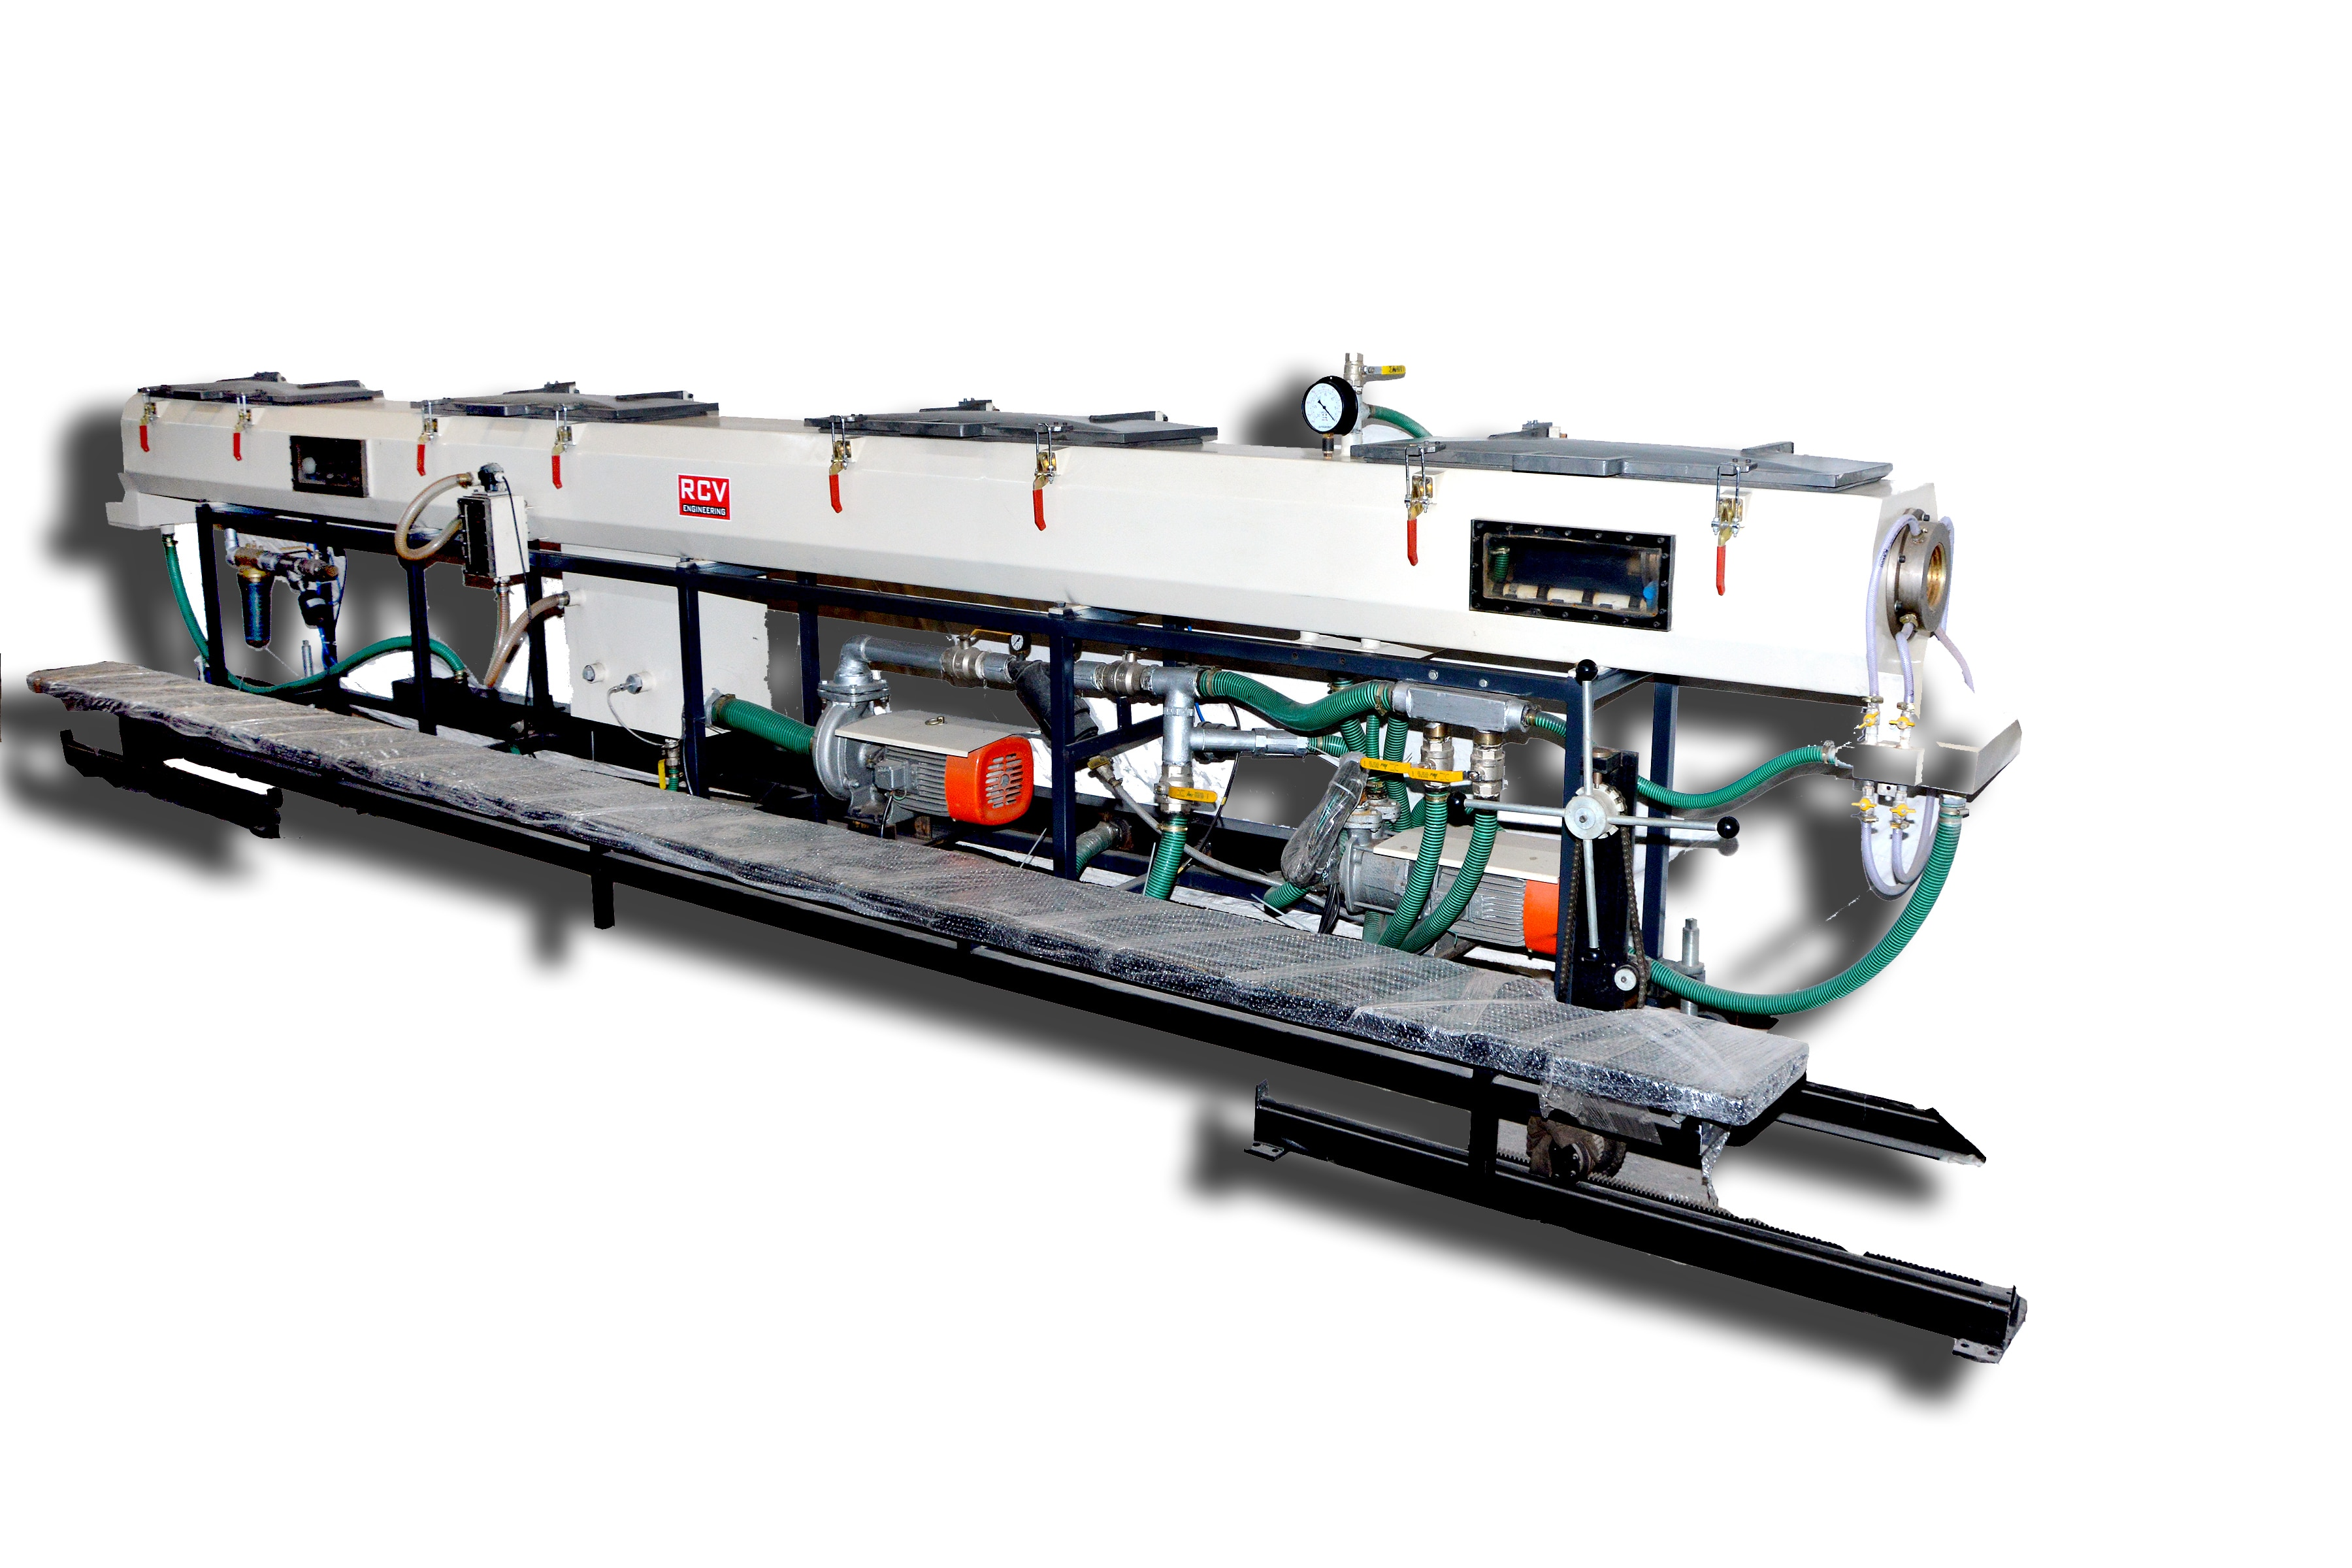 Searching for Vaccum Sizing Tanks Manufacturer in Ahmedabad, India. RCV Engineering India Pvt Ltd has the Expertise in Manufacturing Vaccum Sizing Tanks. These vaccum sizing Tanks are Supplied Across GLOBE.  For More details and Quotation  Drop your Info Below.